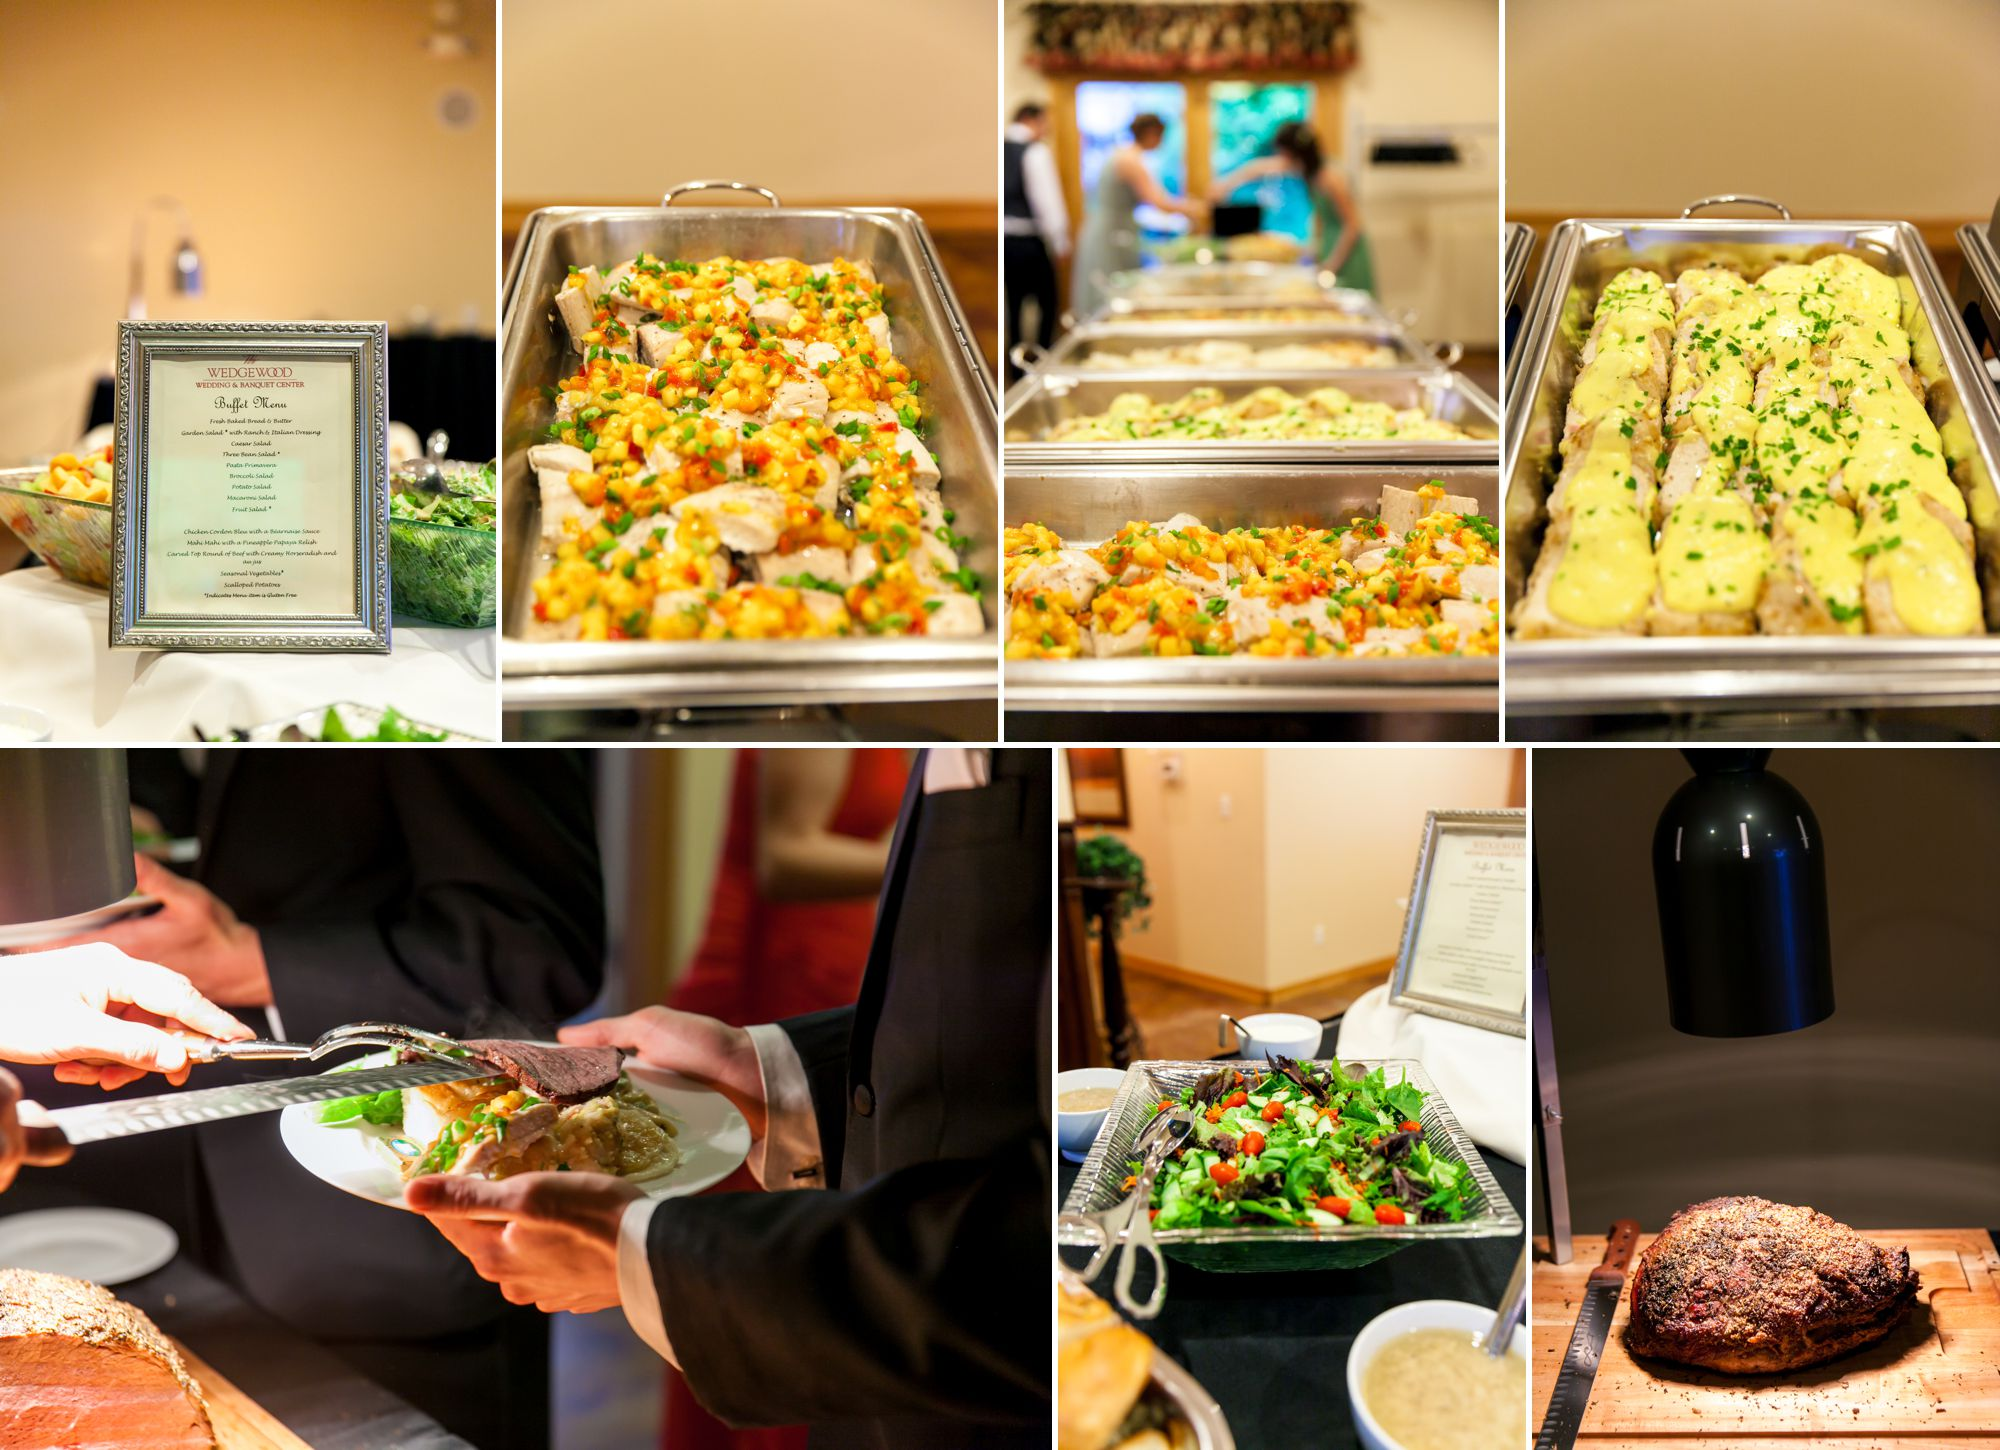 Catering by Wedgewood at Tapestry House